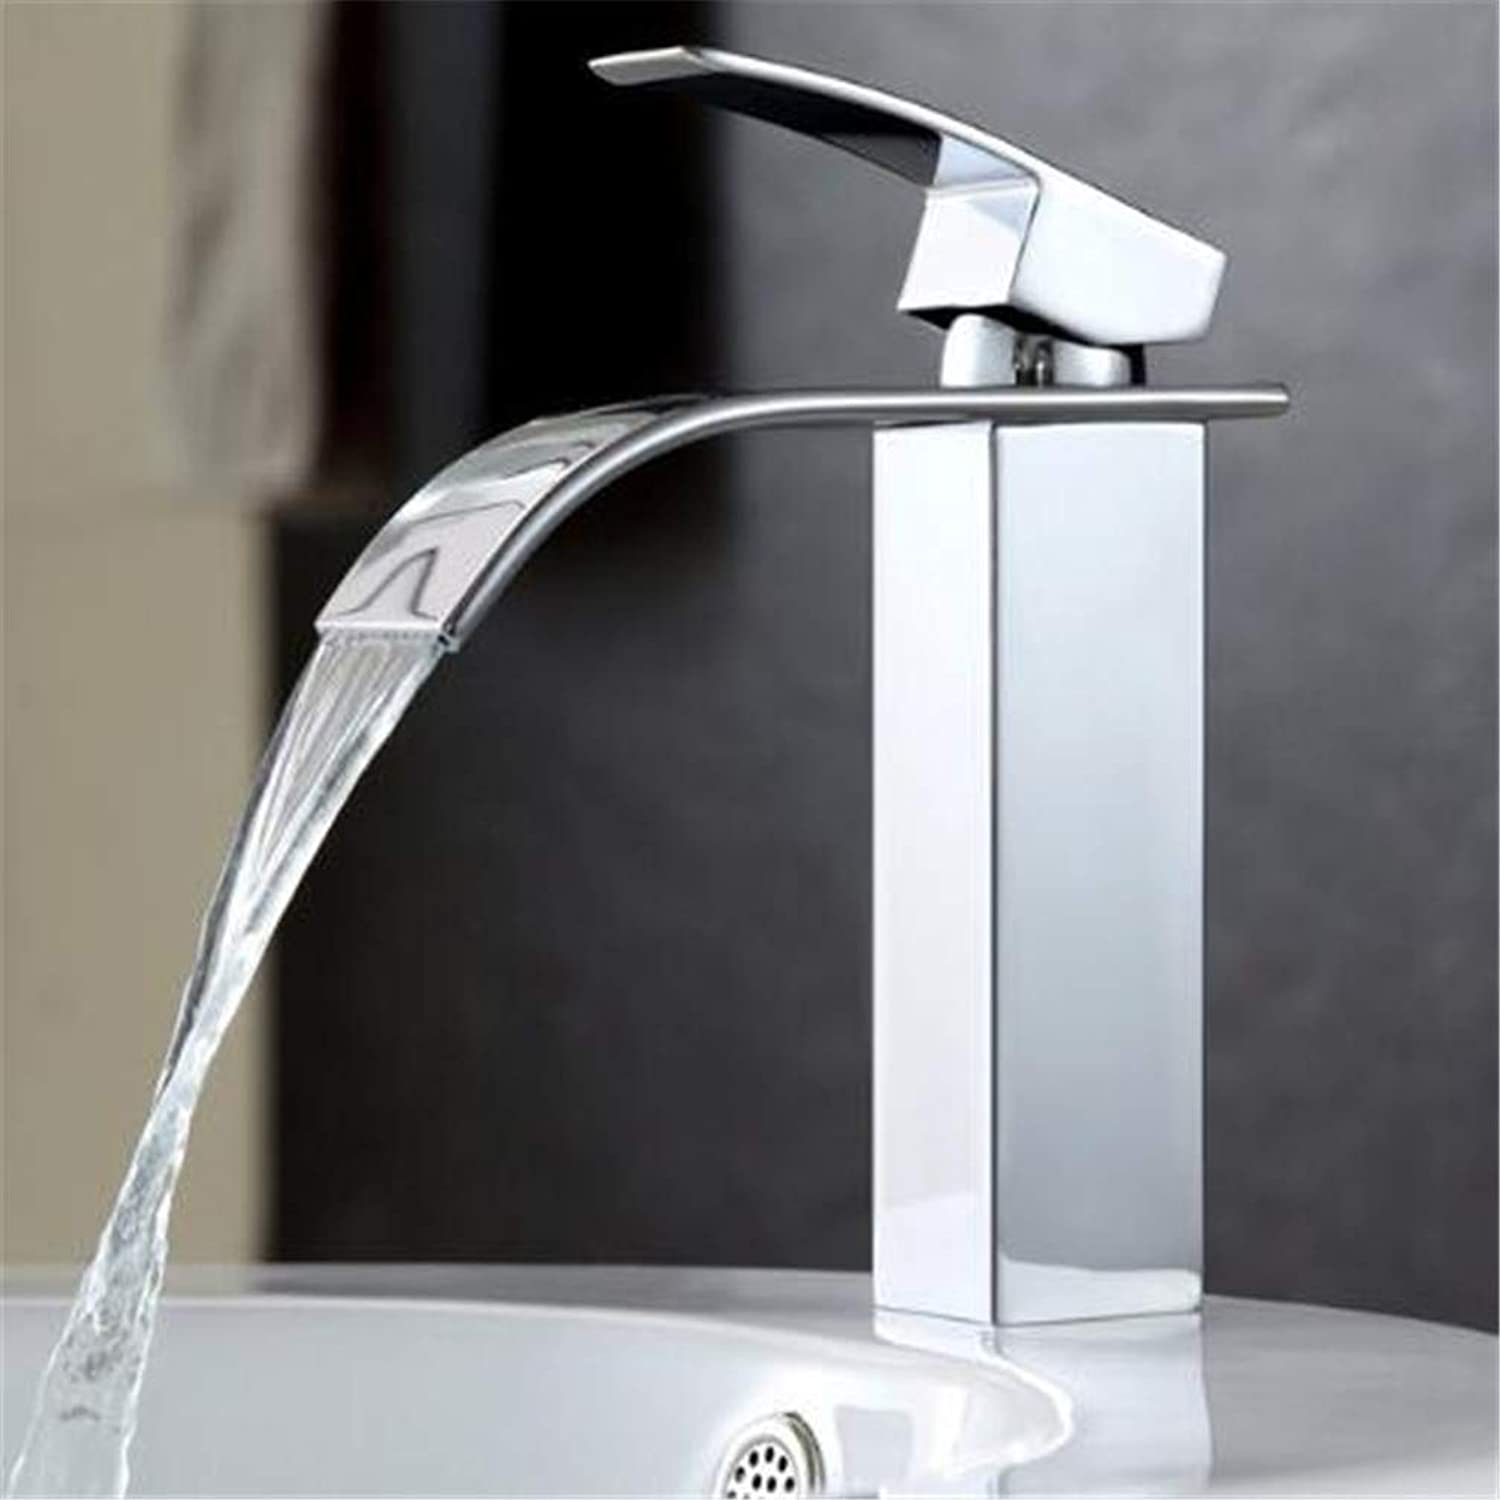 Bathroom Taps Basin Mixer Taps Bathroom Faucet Sinkhot and Cold Water Basin Faucet Mixer Single Handle Single Hole Modern Style Chrome Tap Square Multi-Function